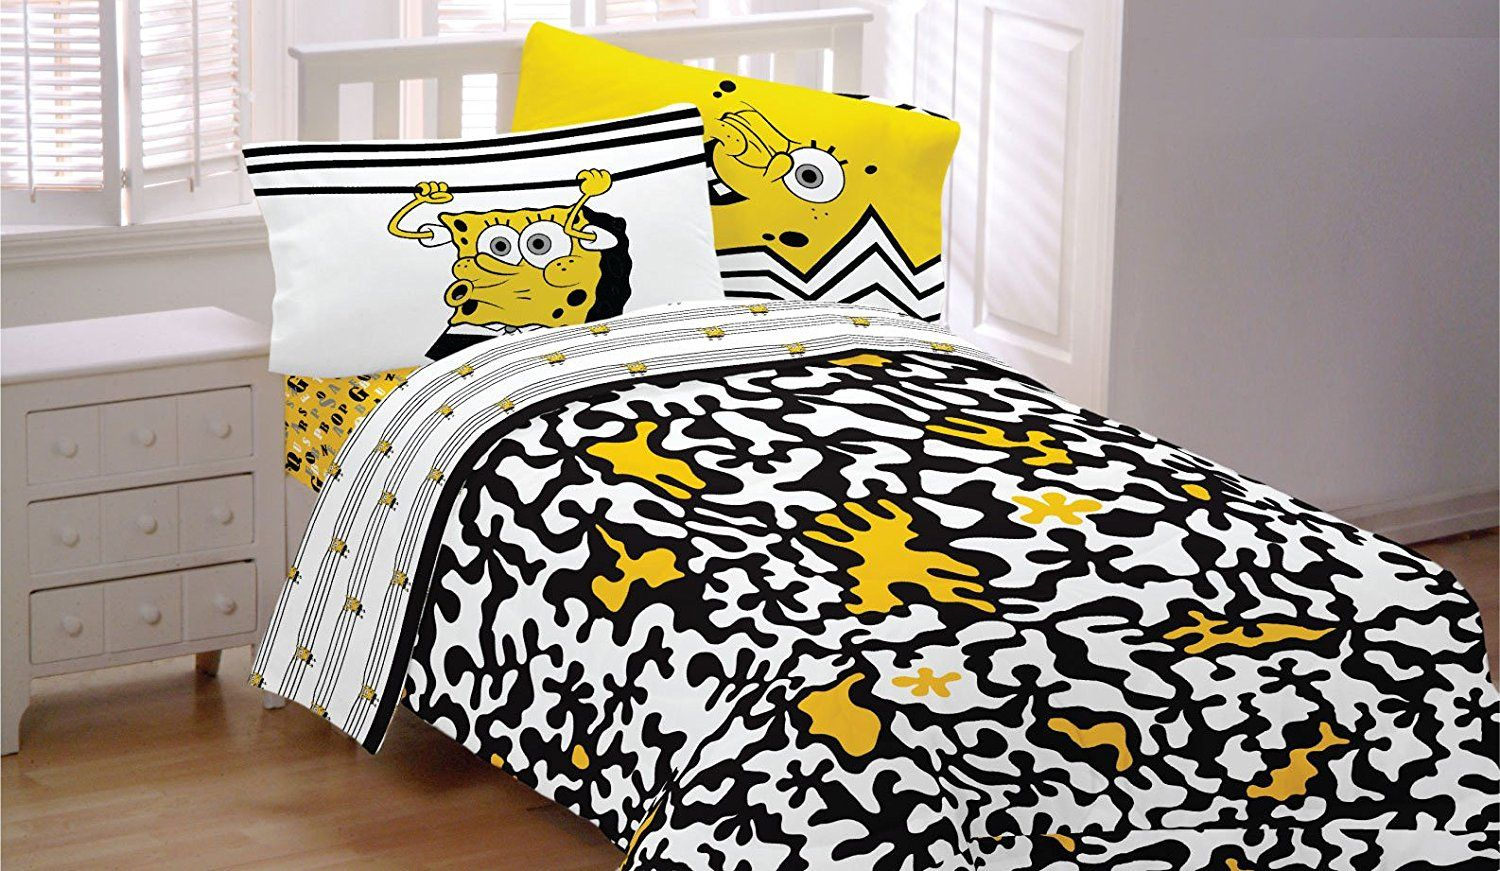 4pc Spongebob Squarepants Twin Bedding Set Try Angle Comforter And Sheet Set